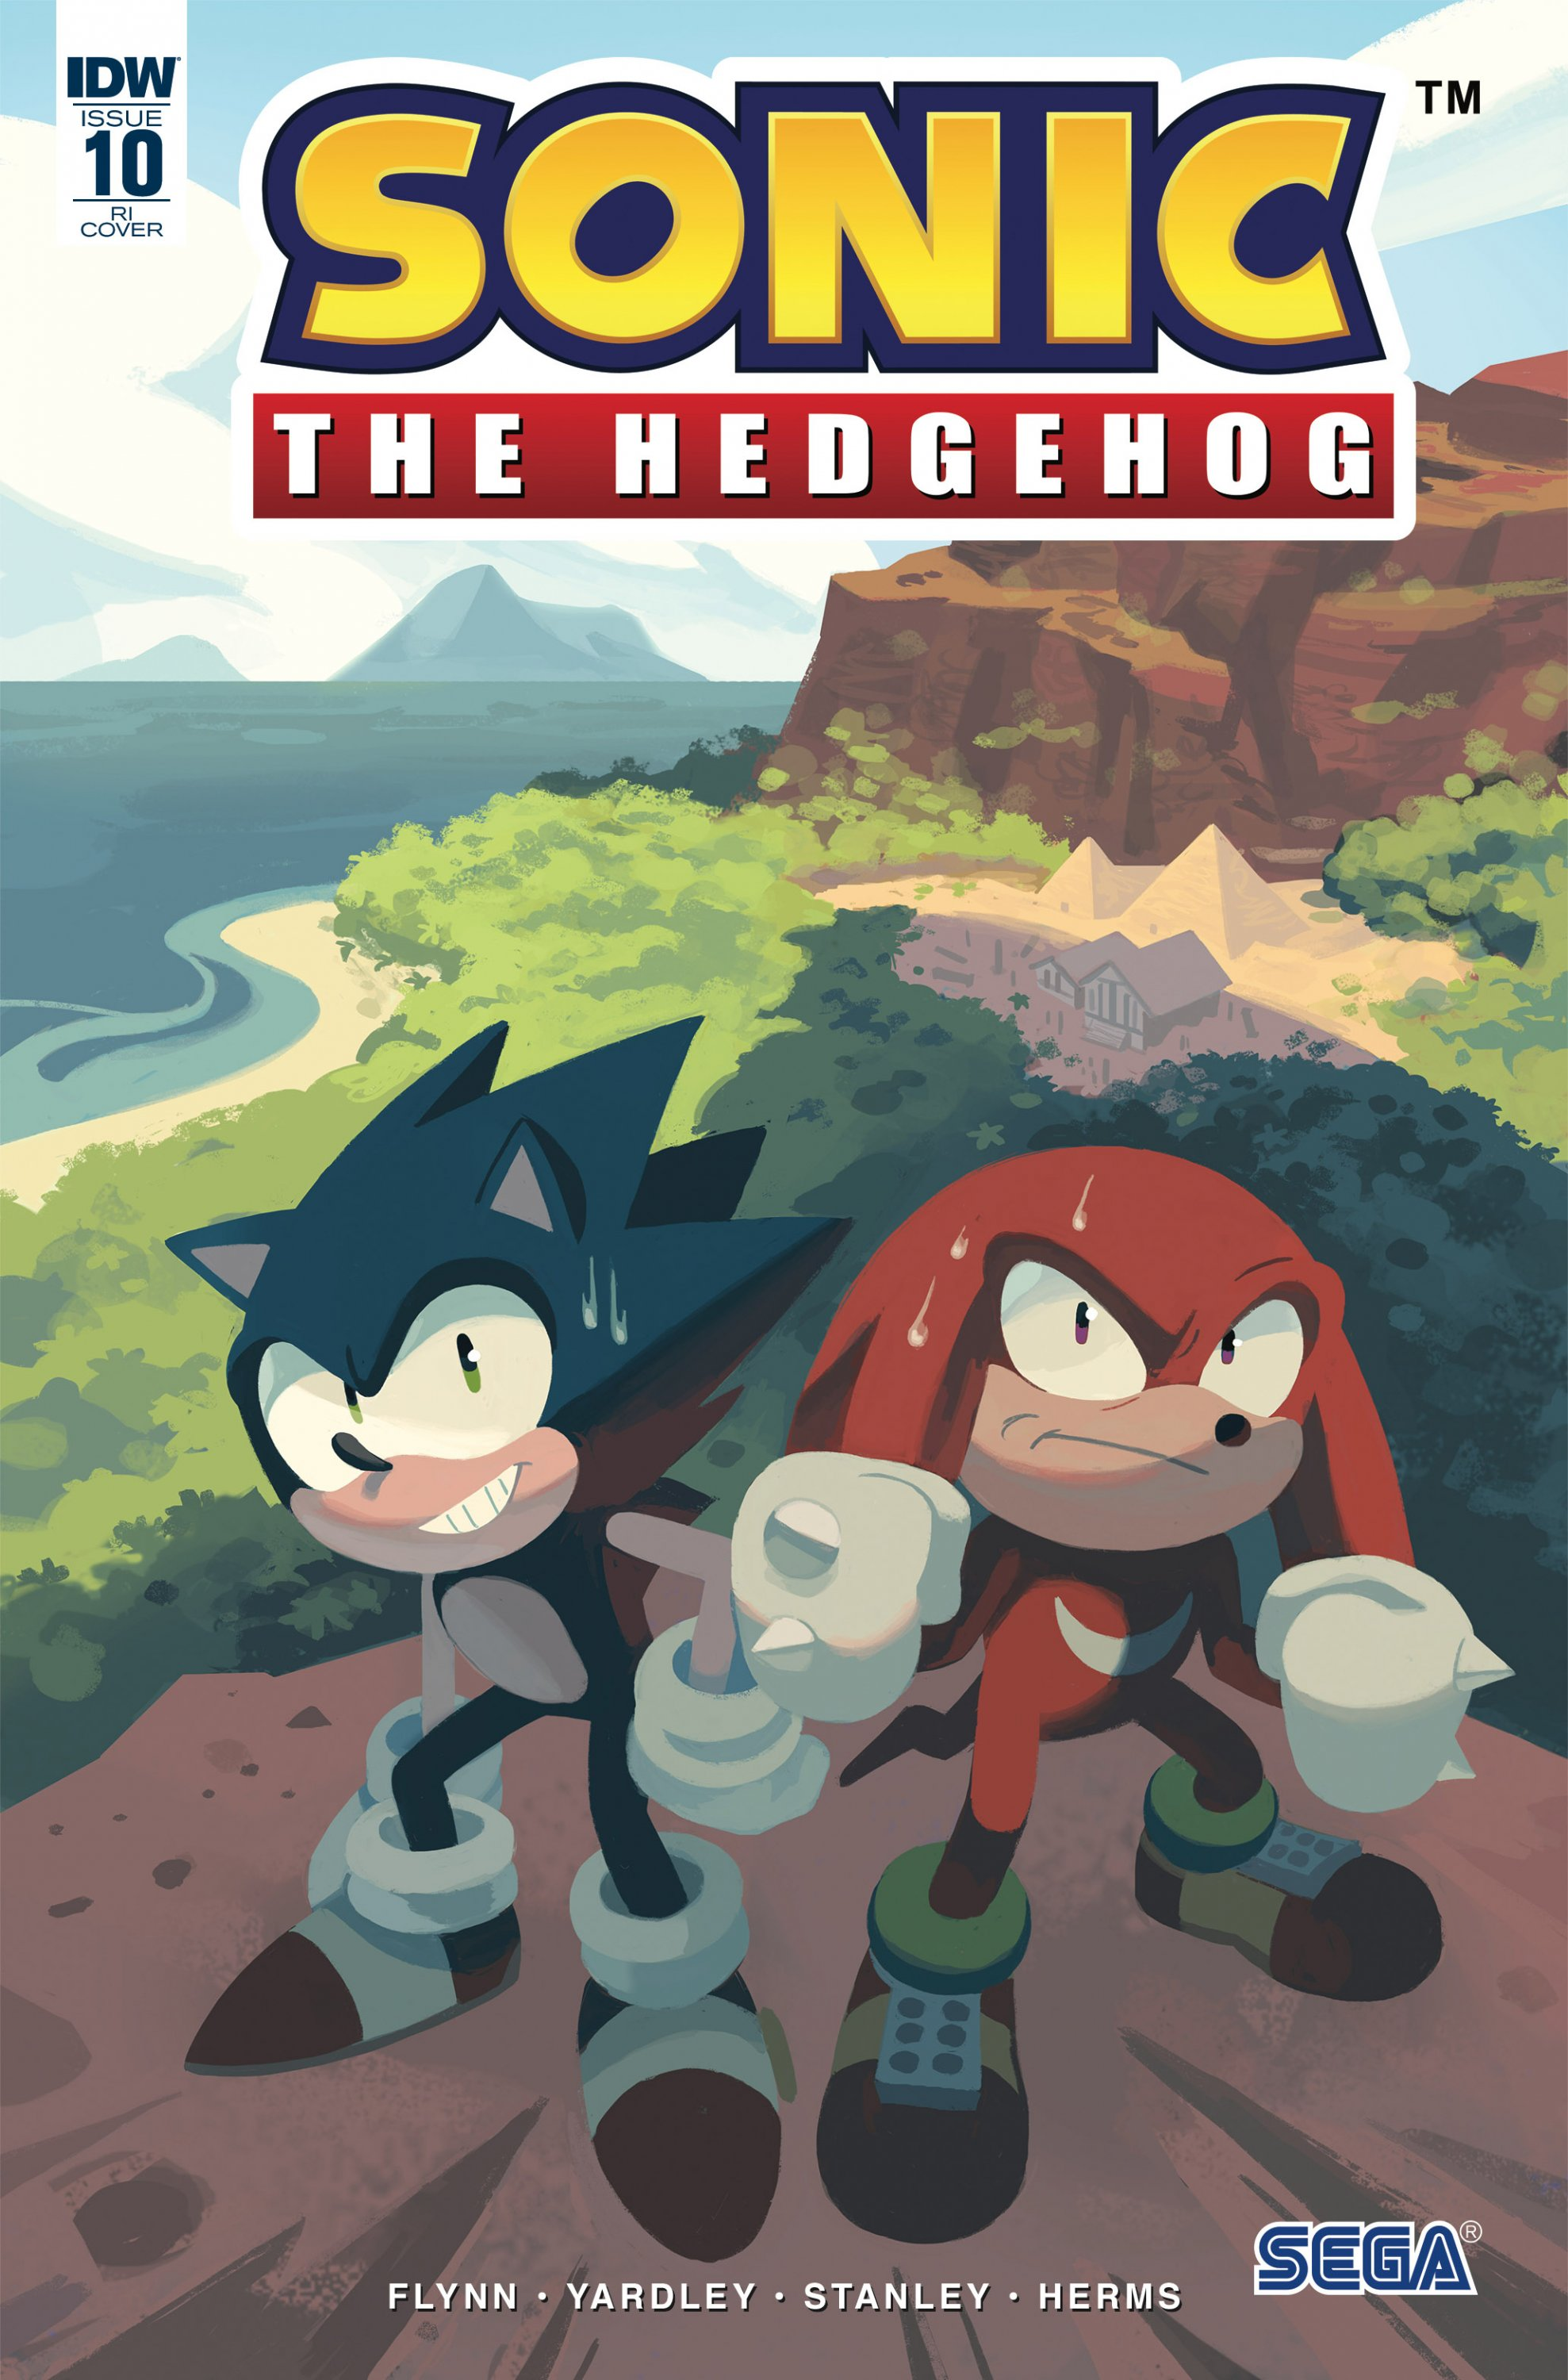 Sonic the Hedgehog 010 (October 2018) (retailer incentive)